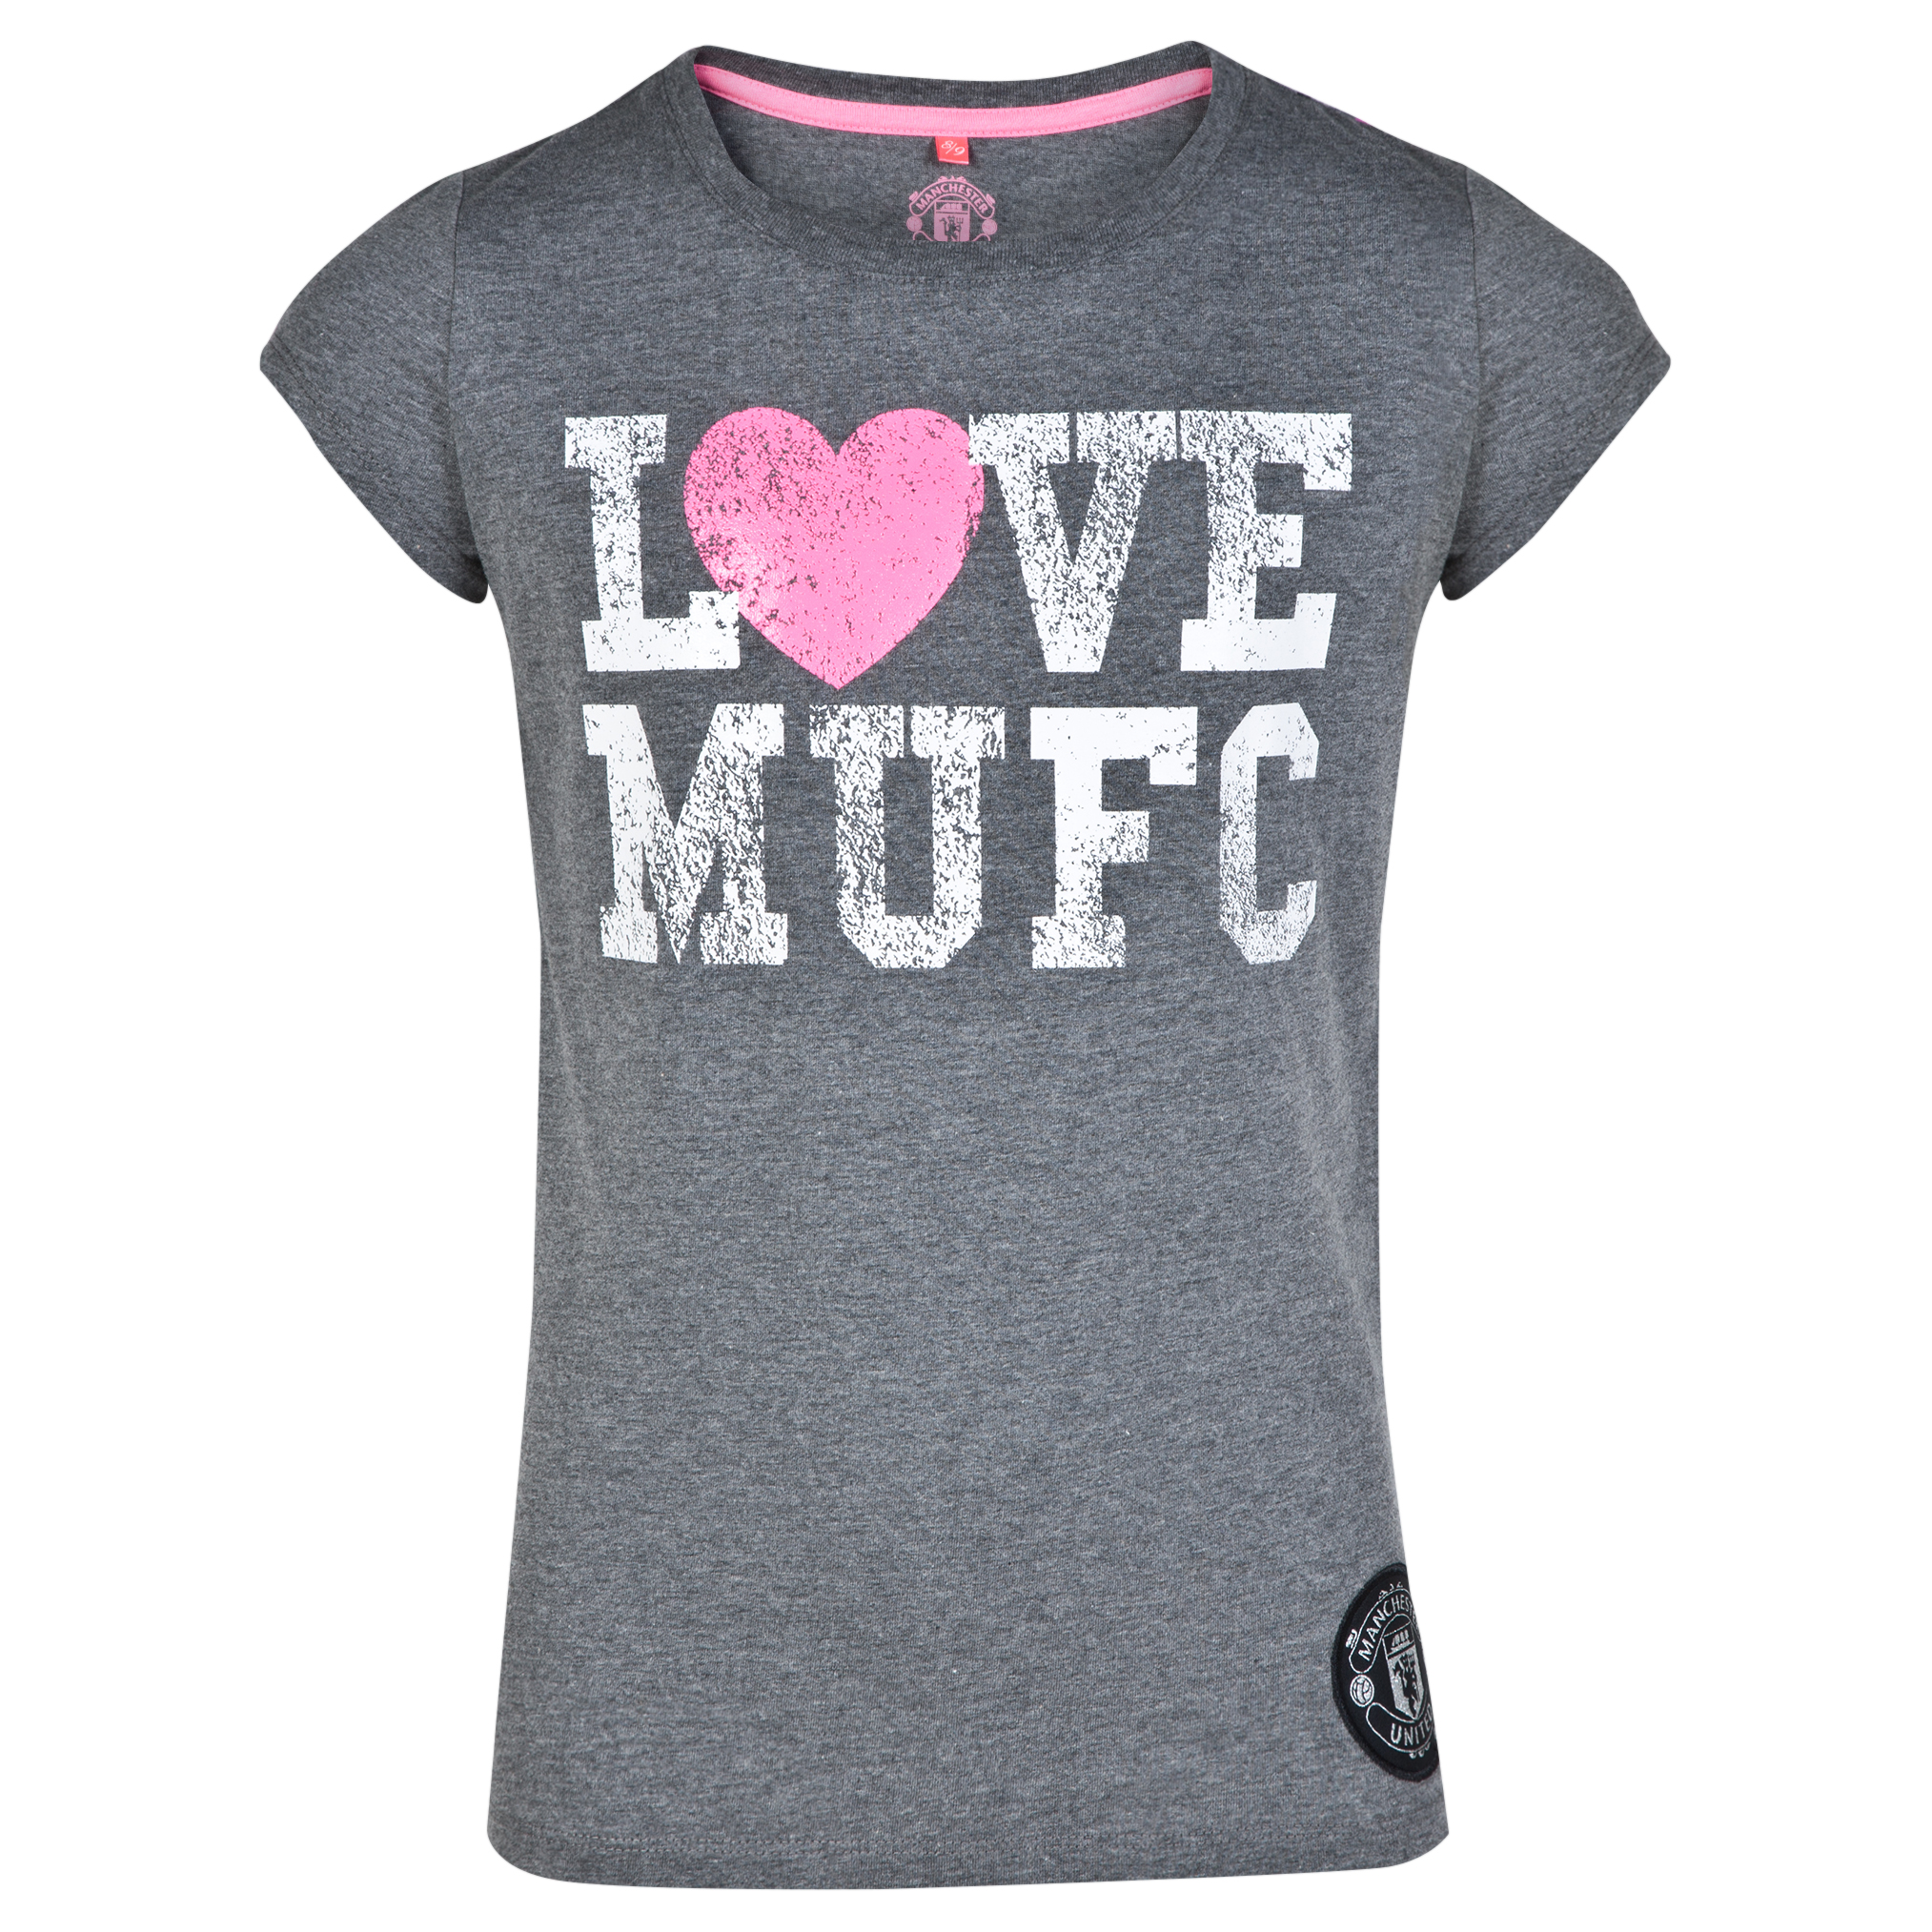 Manchester United Star Print Graphic T-Shirt - Vintage Marl - Girls